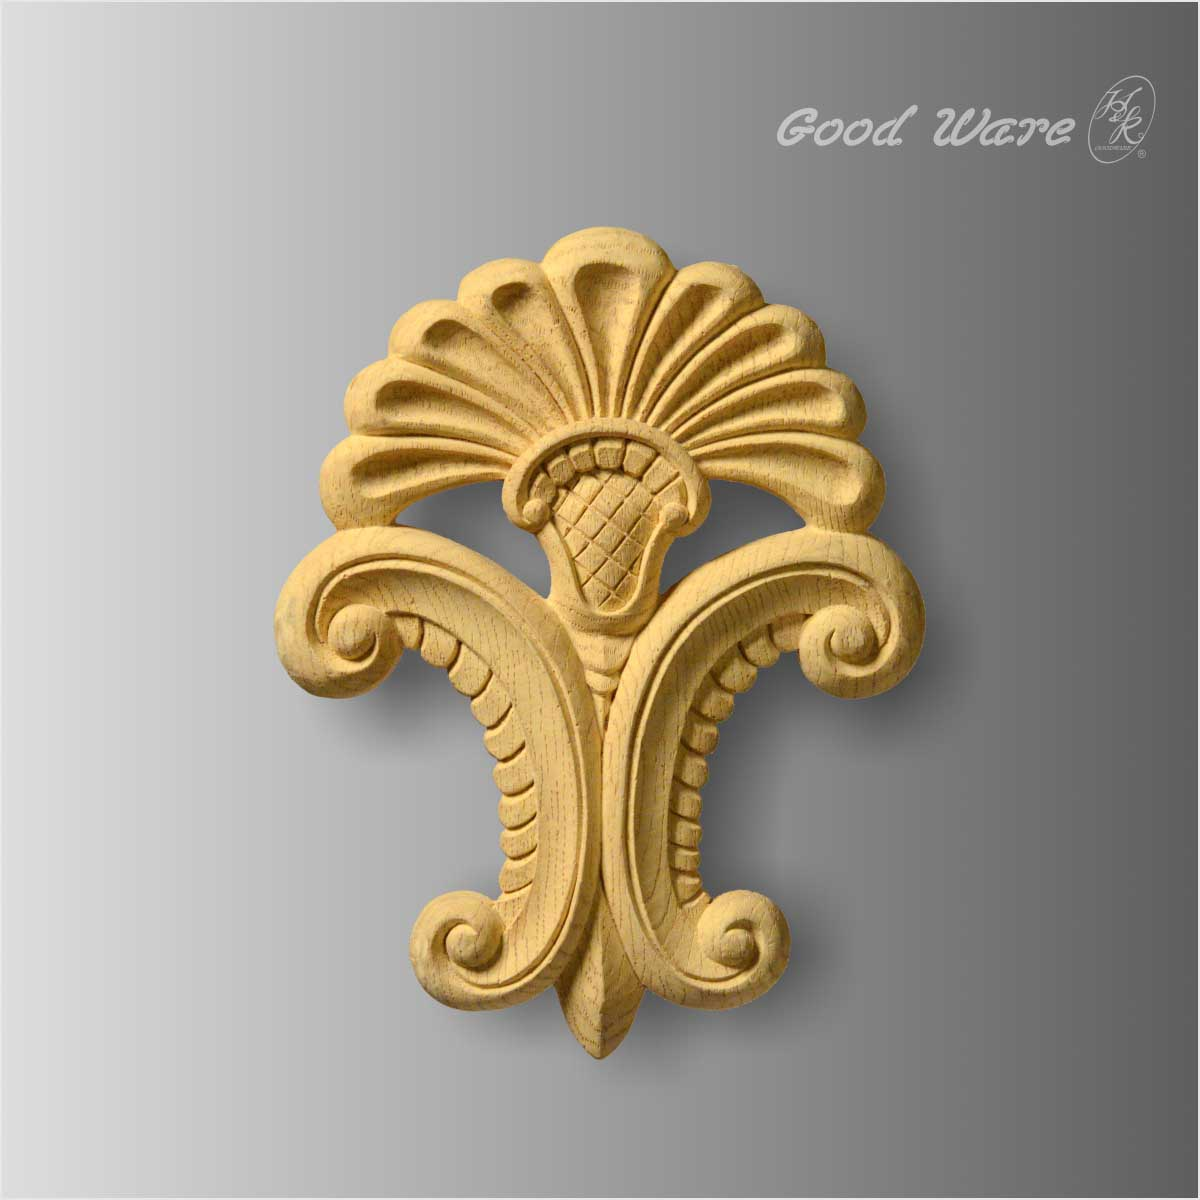 Polyurethane decorative faux wood appliques for sale